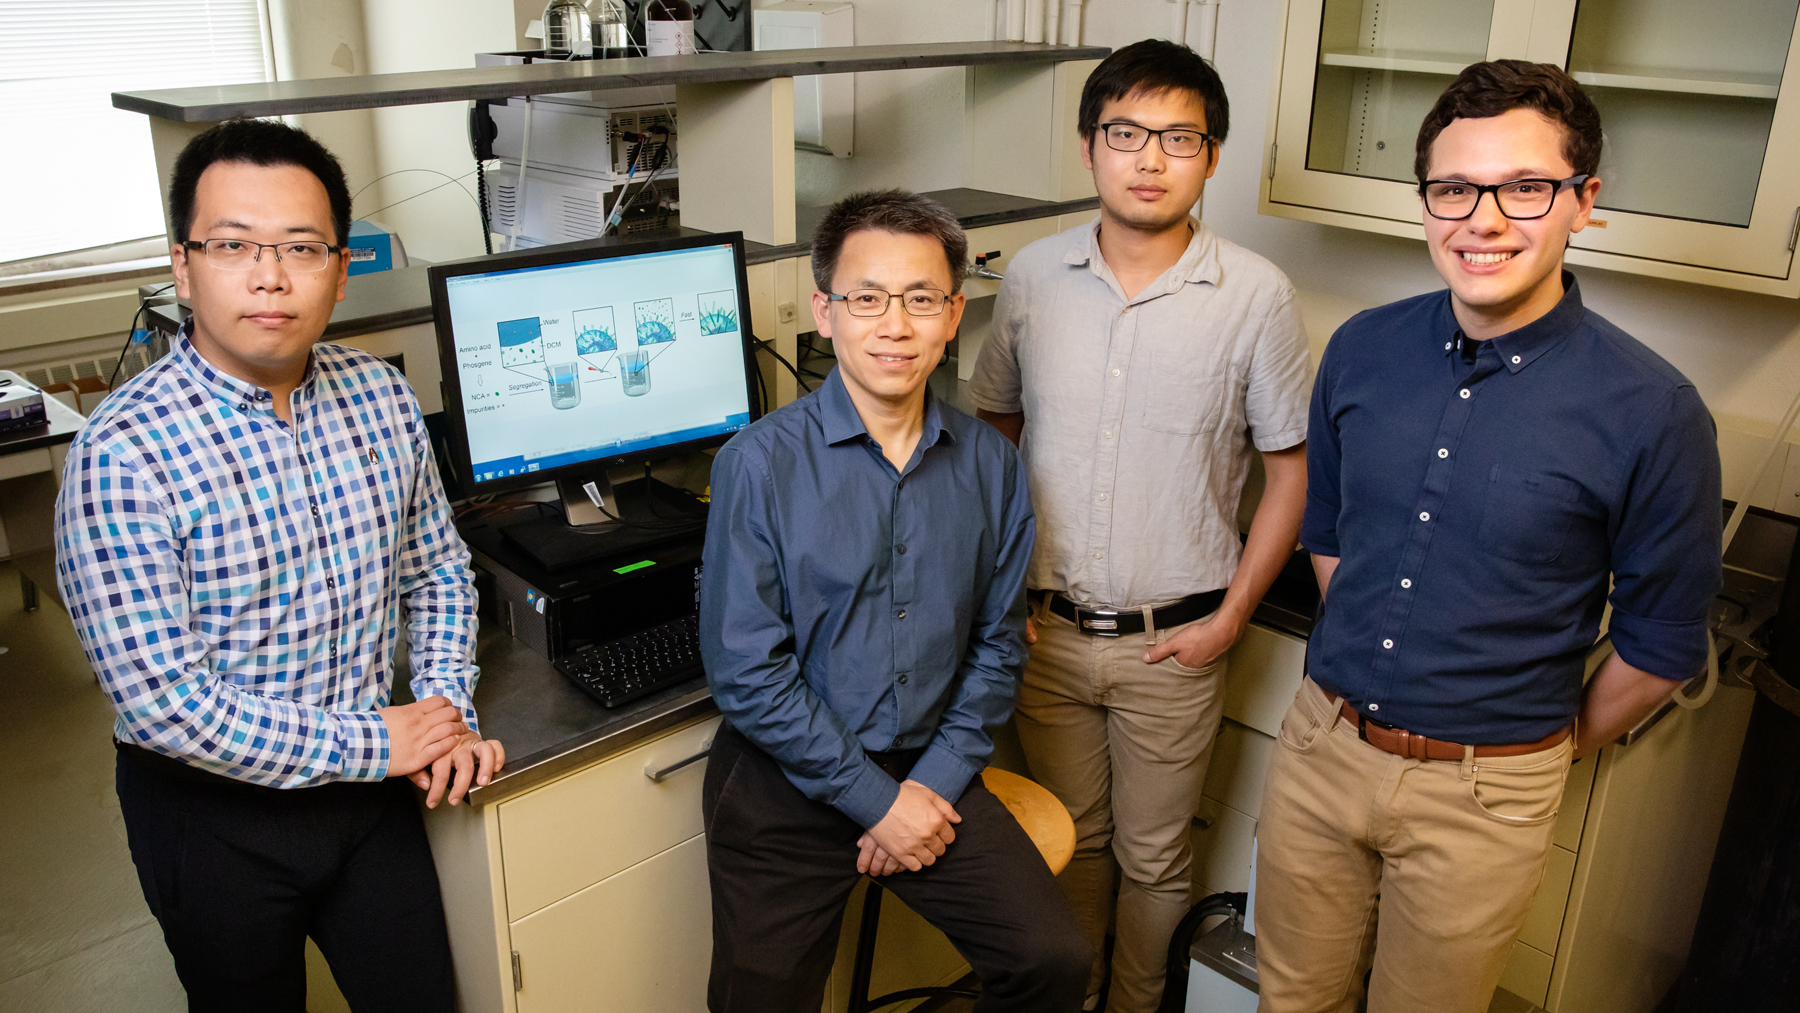 postdoctoral researcher Ziyuan Song, professor Jianjun Cheng and graduate students Tianrui Xue and Lazaro Pacheco. Photo by Brian Stauffer